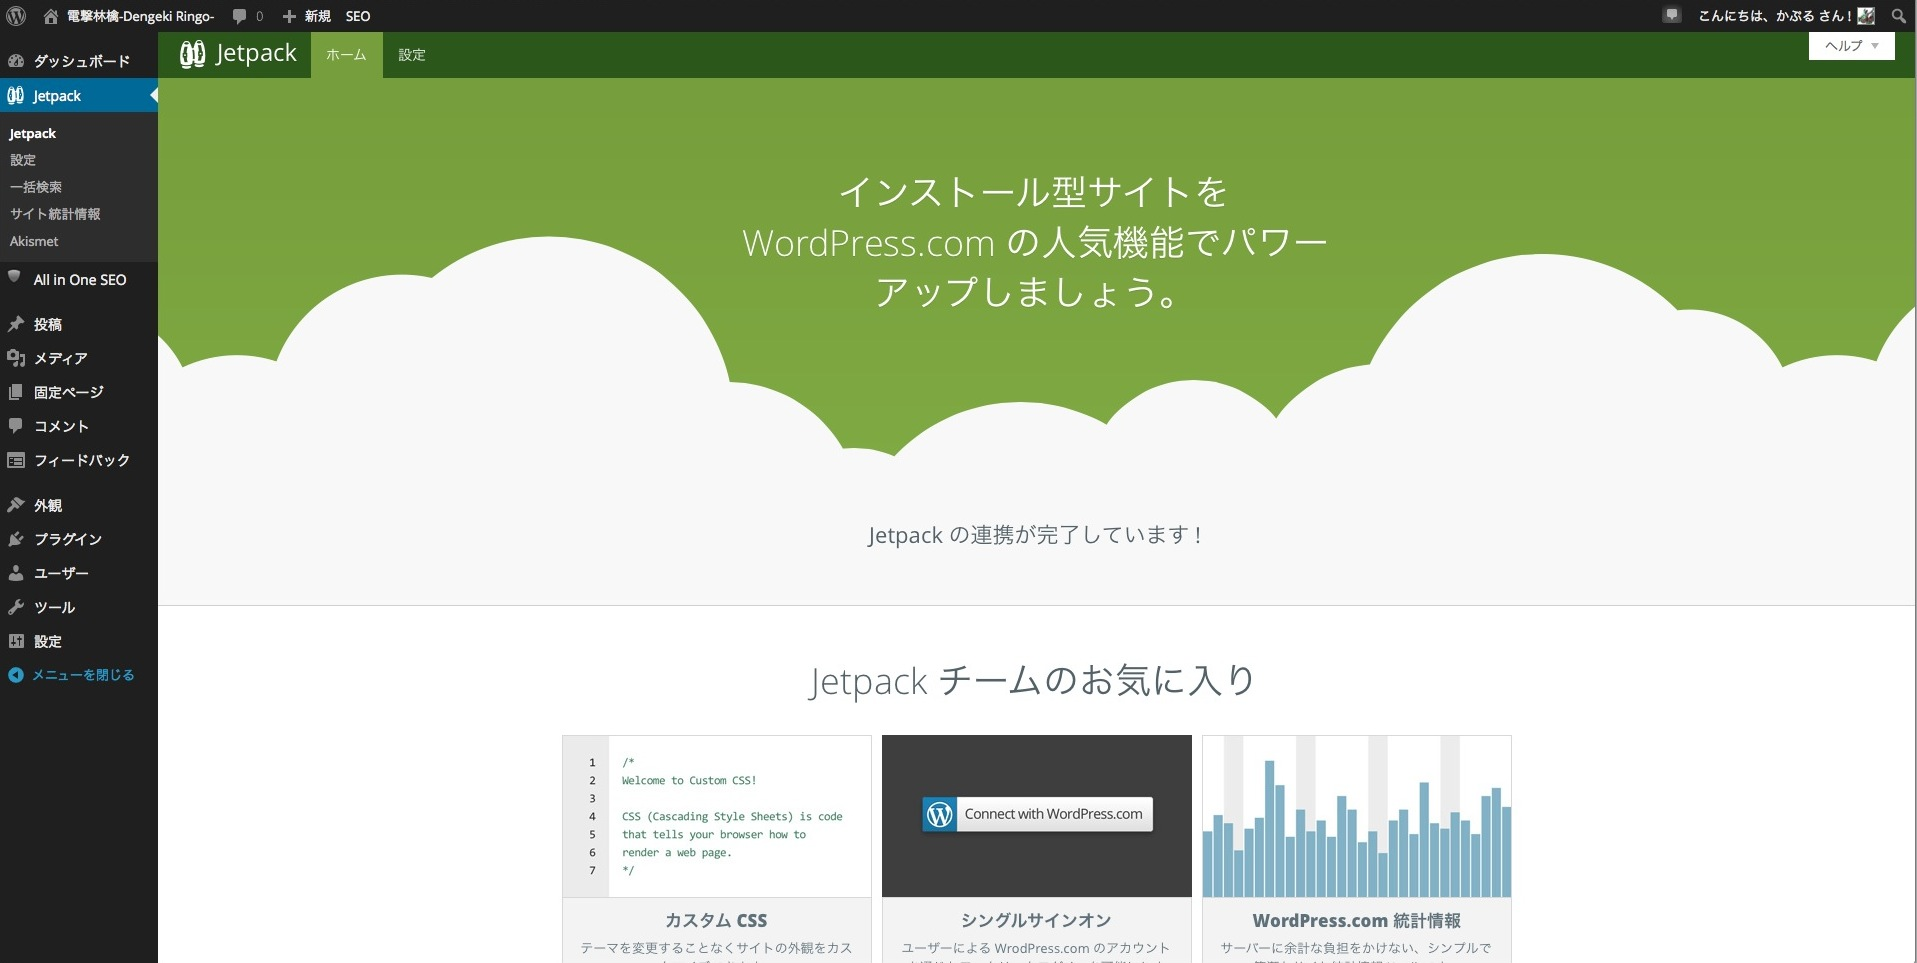 WordPress Jetpack 管理画面